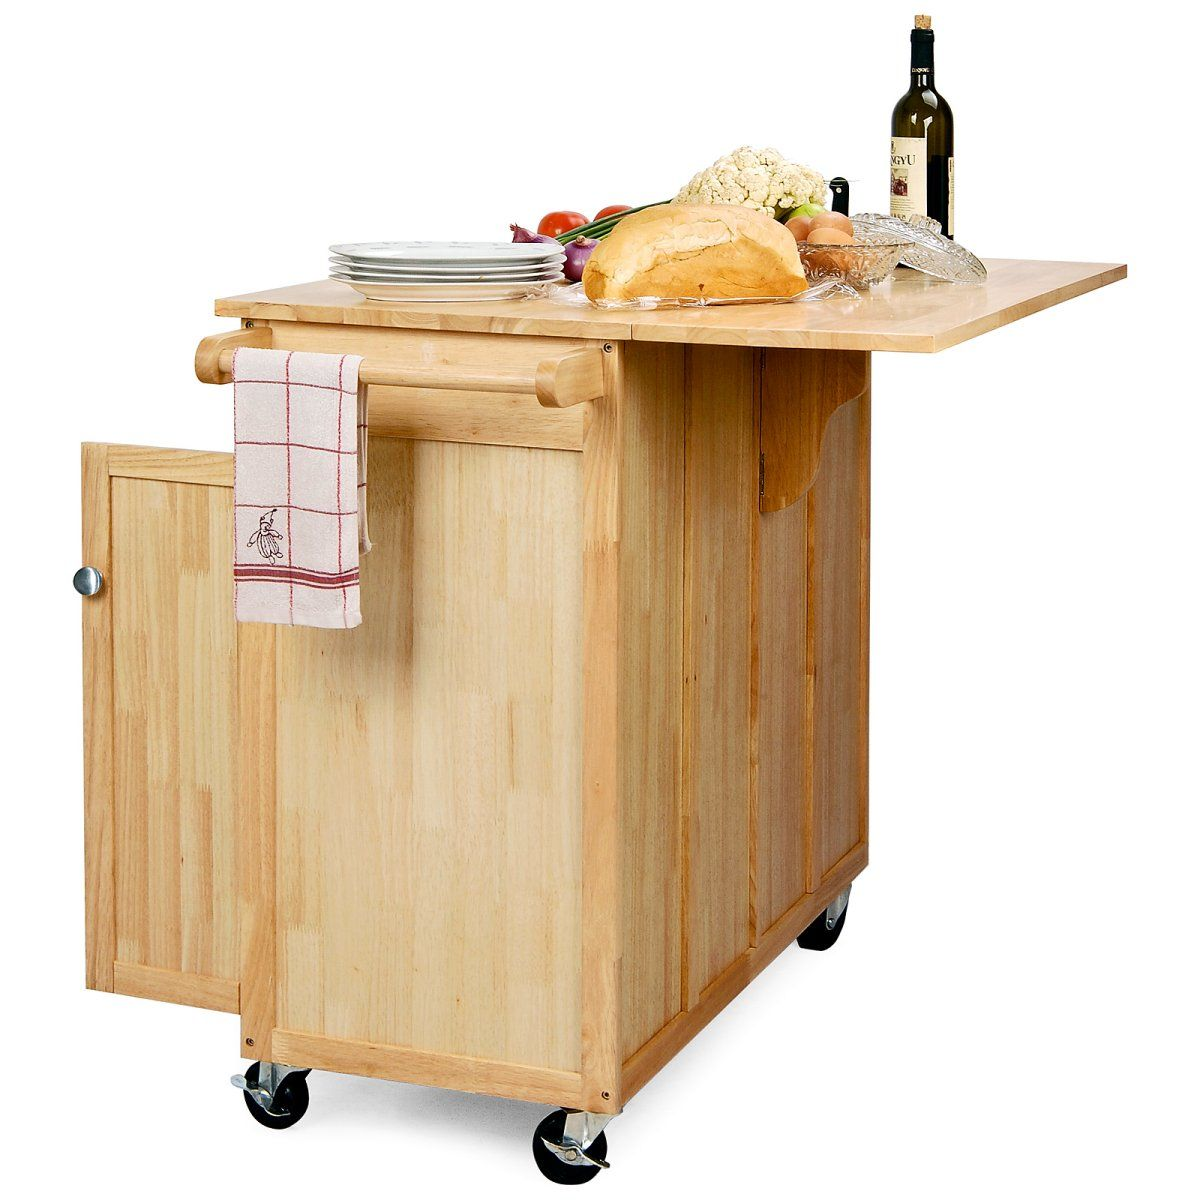 The Vinton Portable Kitchen Island With Optional Stools Kitchen Islands And Carts At Hayneedle